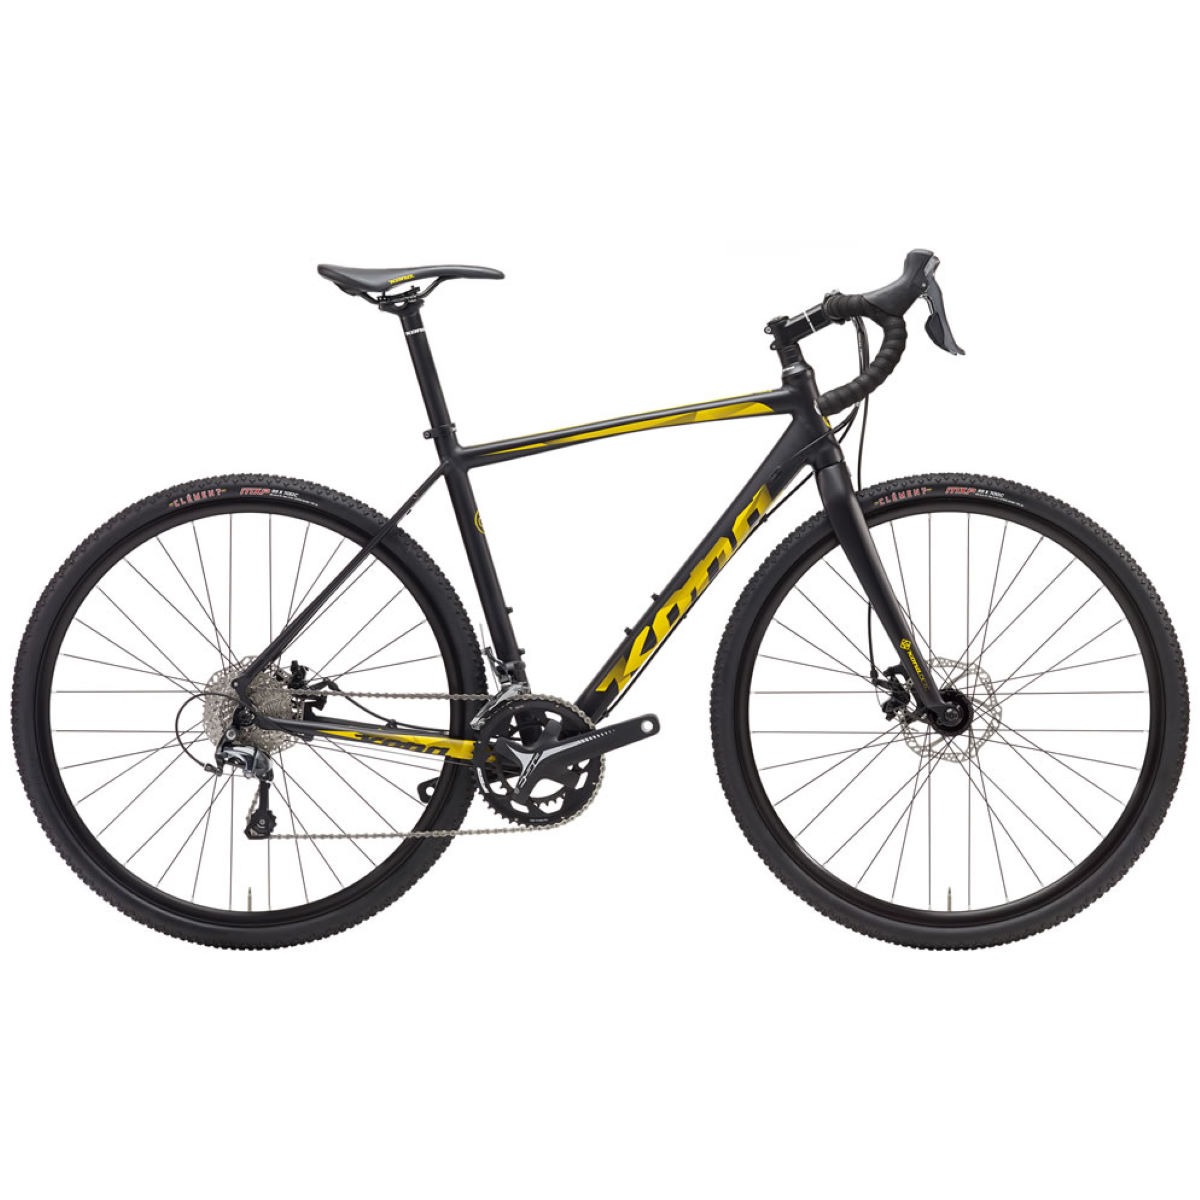 Vélo de cyclo-cross Kona Jake (2017) - 57cm Noir Vélos cyclo-cross